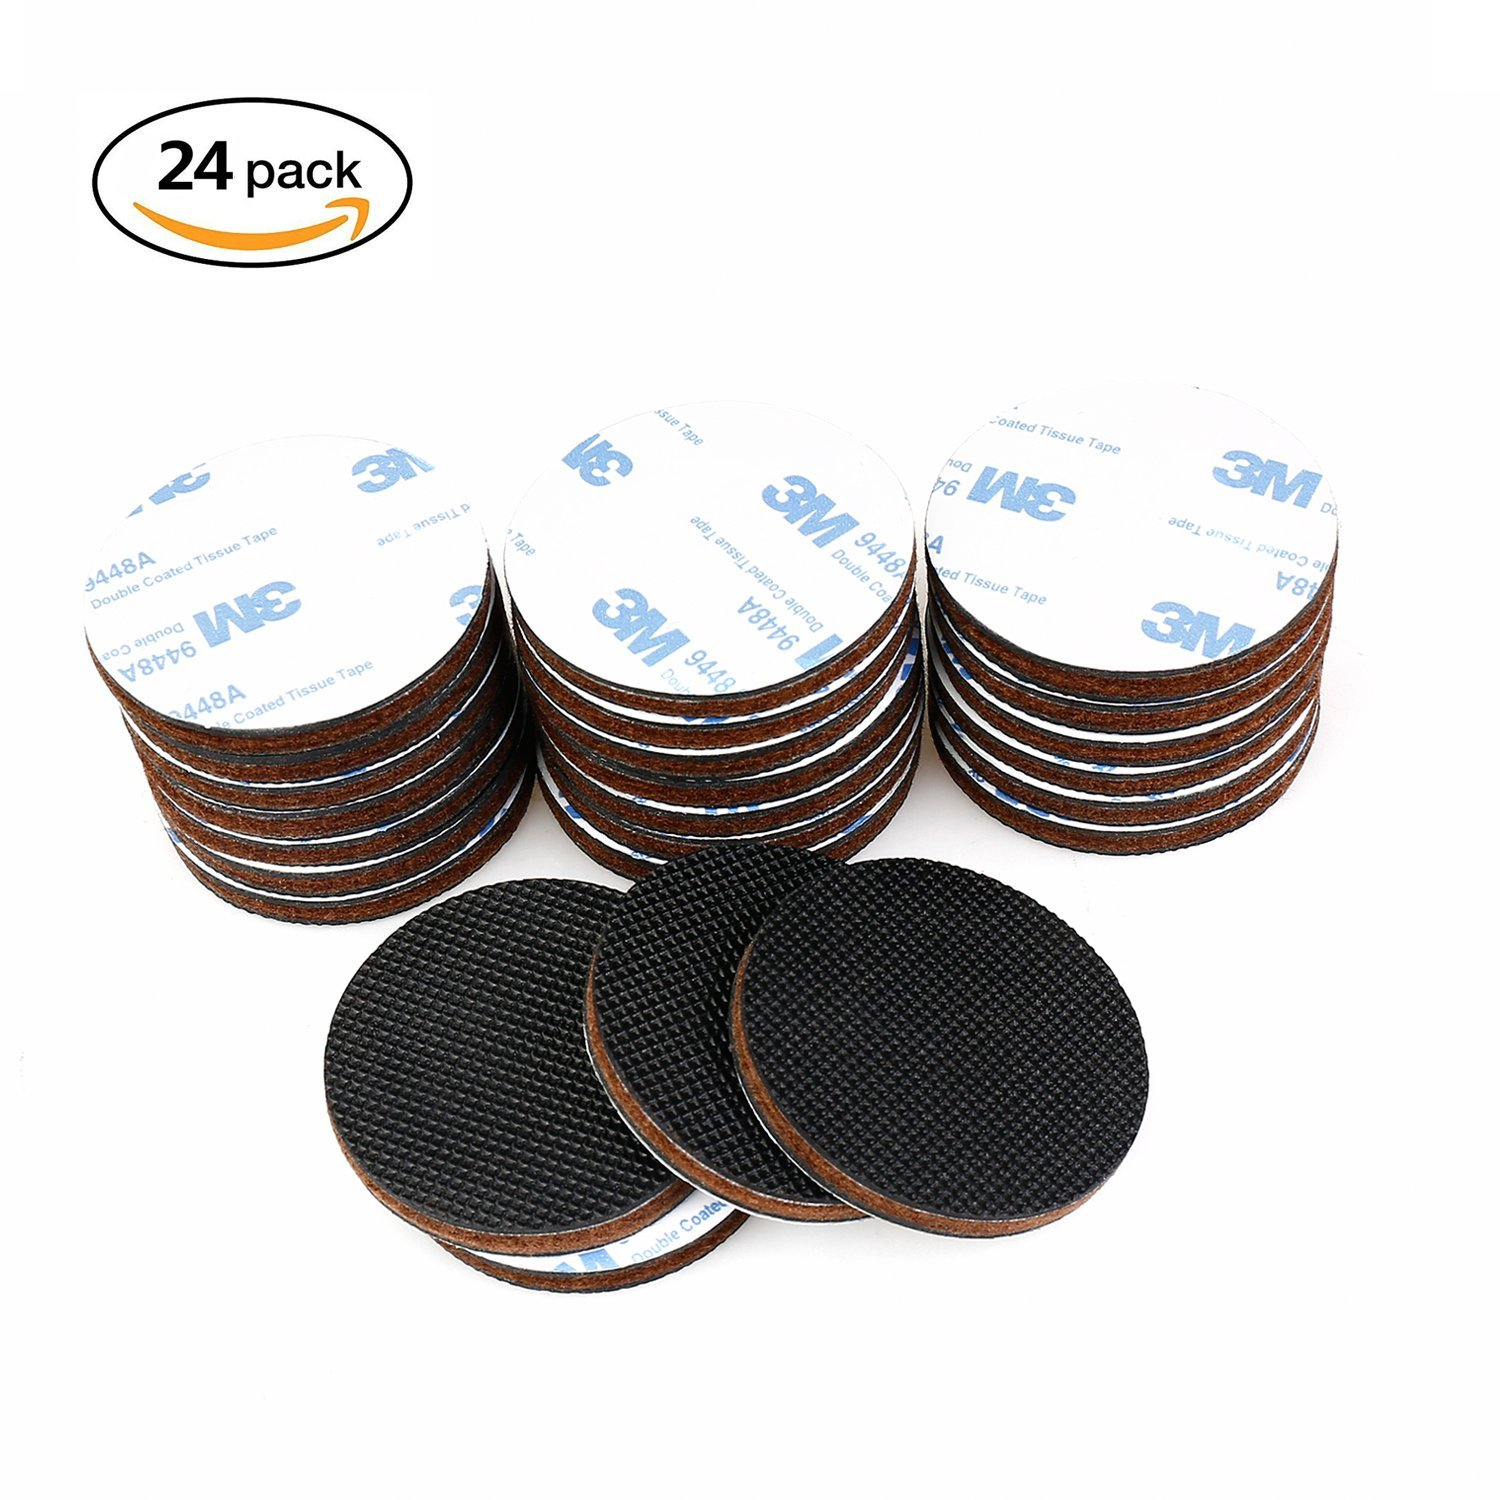 "24PCS Felt Furniture Pads Non Slip for Hardwood Floor and Furniture Protectors 2"" ROUND"